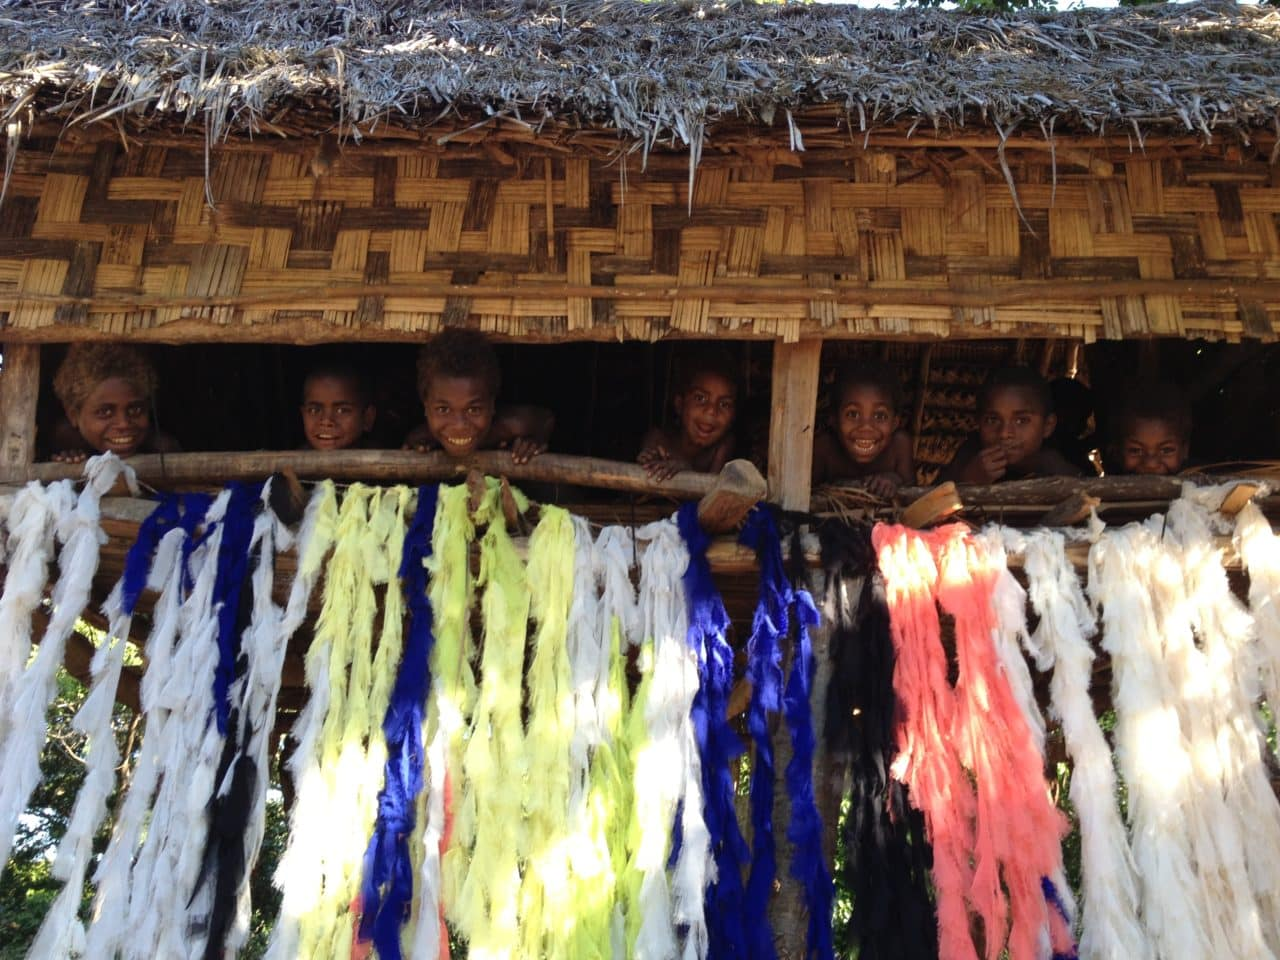 The people of Vanuatu with Tiago Valente's textiles (Photo: Tiago Valente)